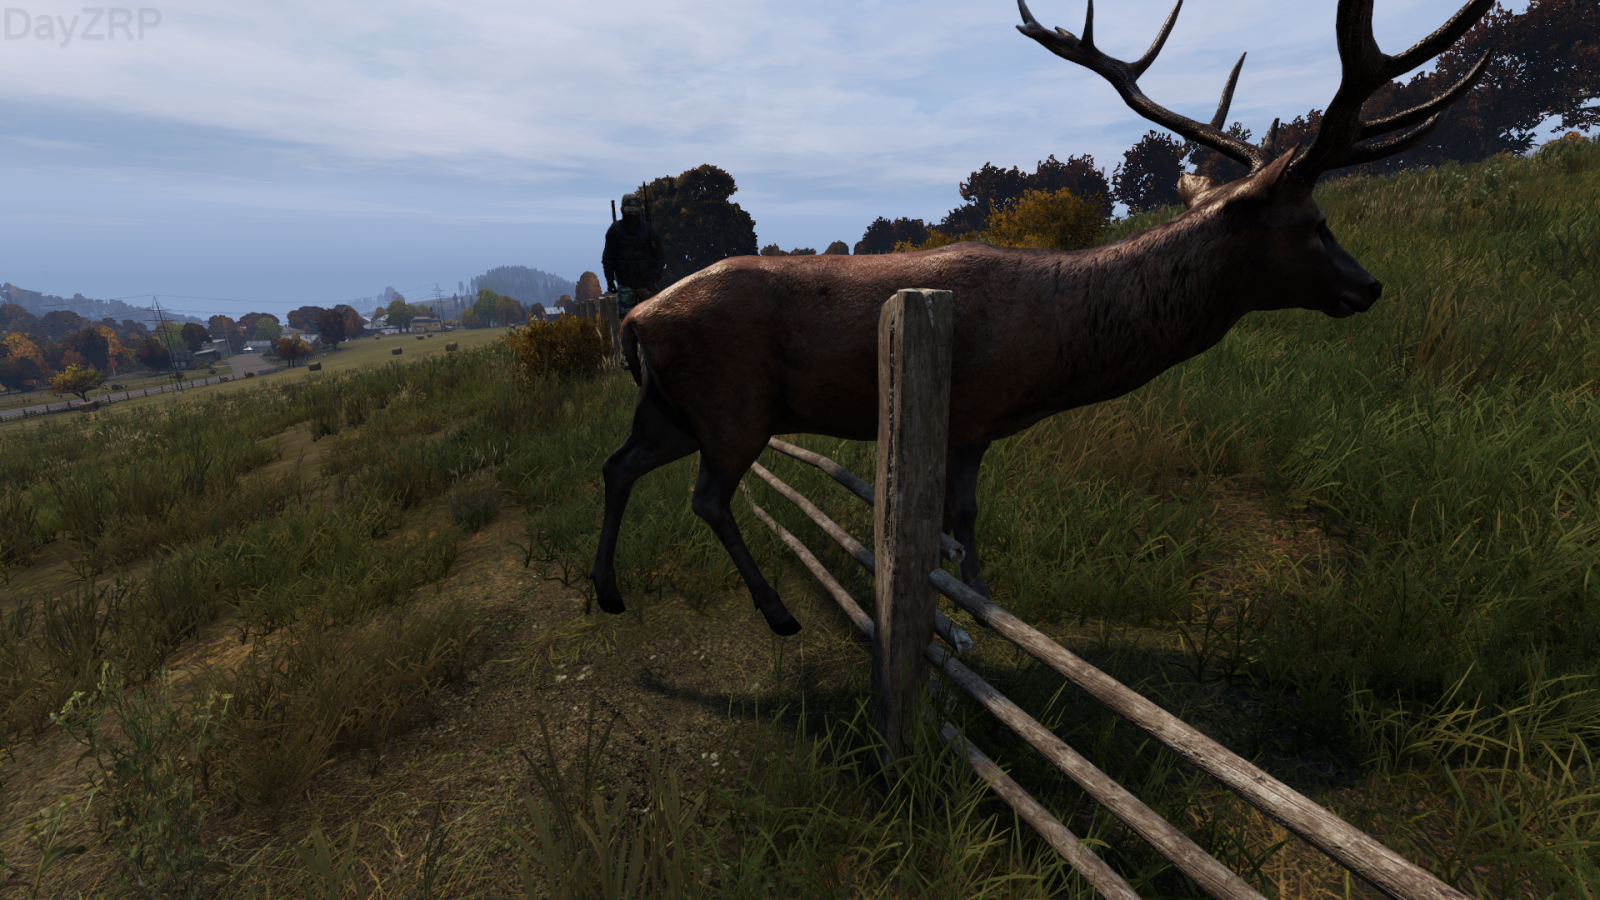 Freeing the stag